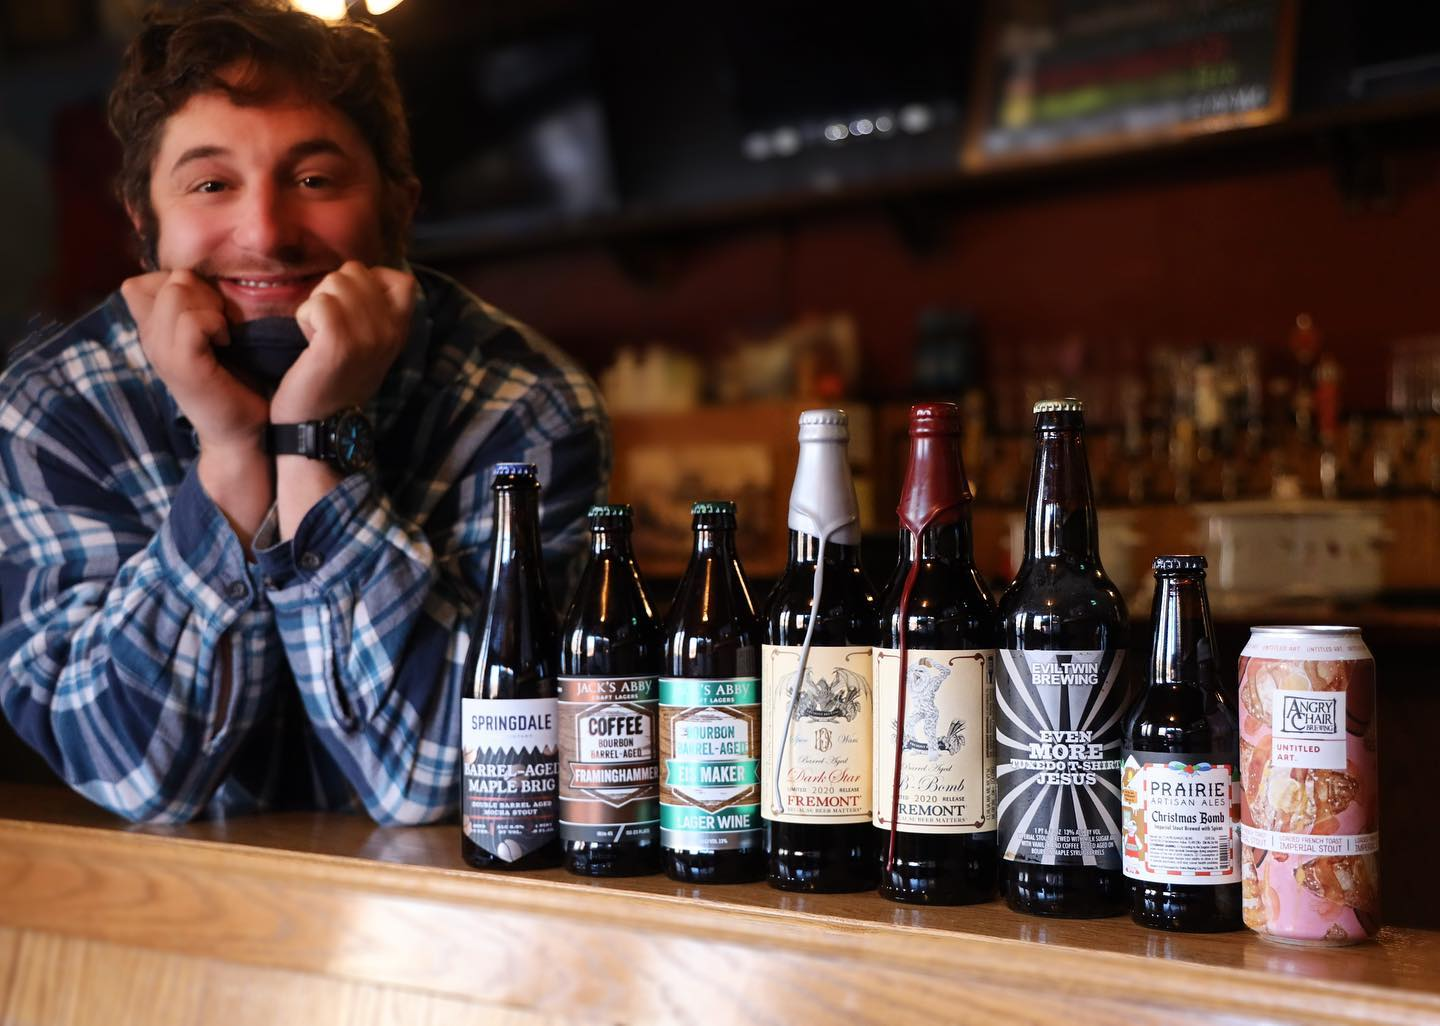 assortment of beer bottles infront of a man smiling